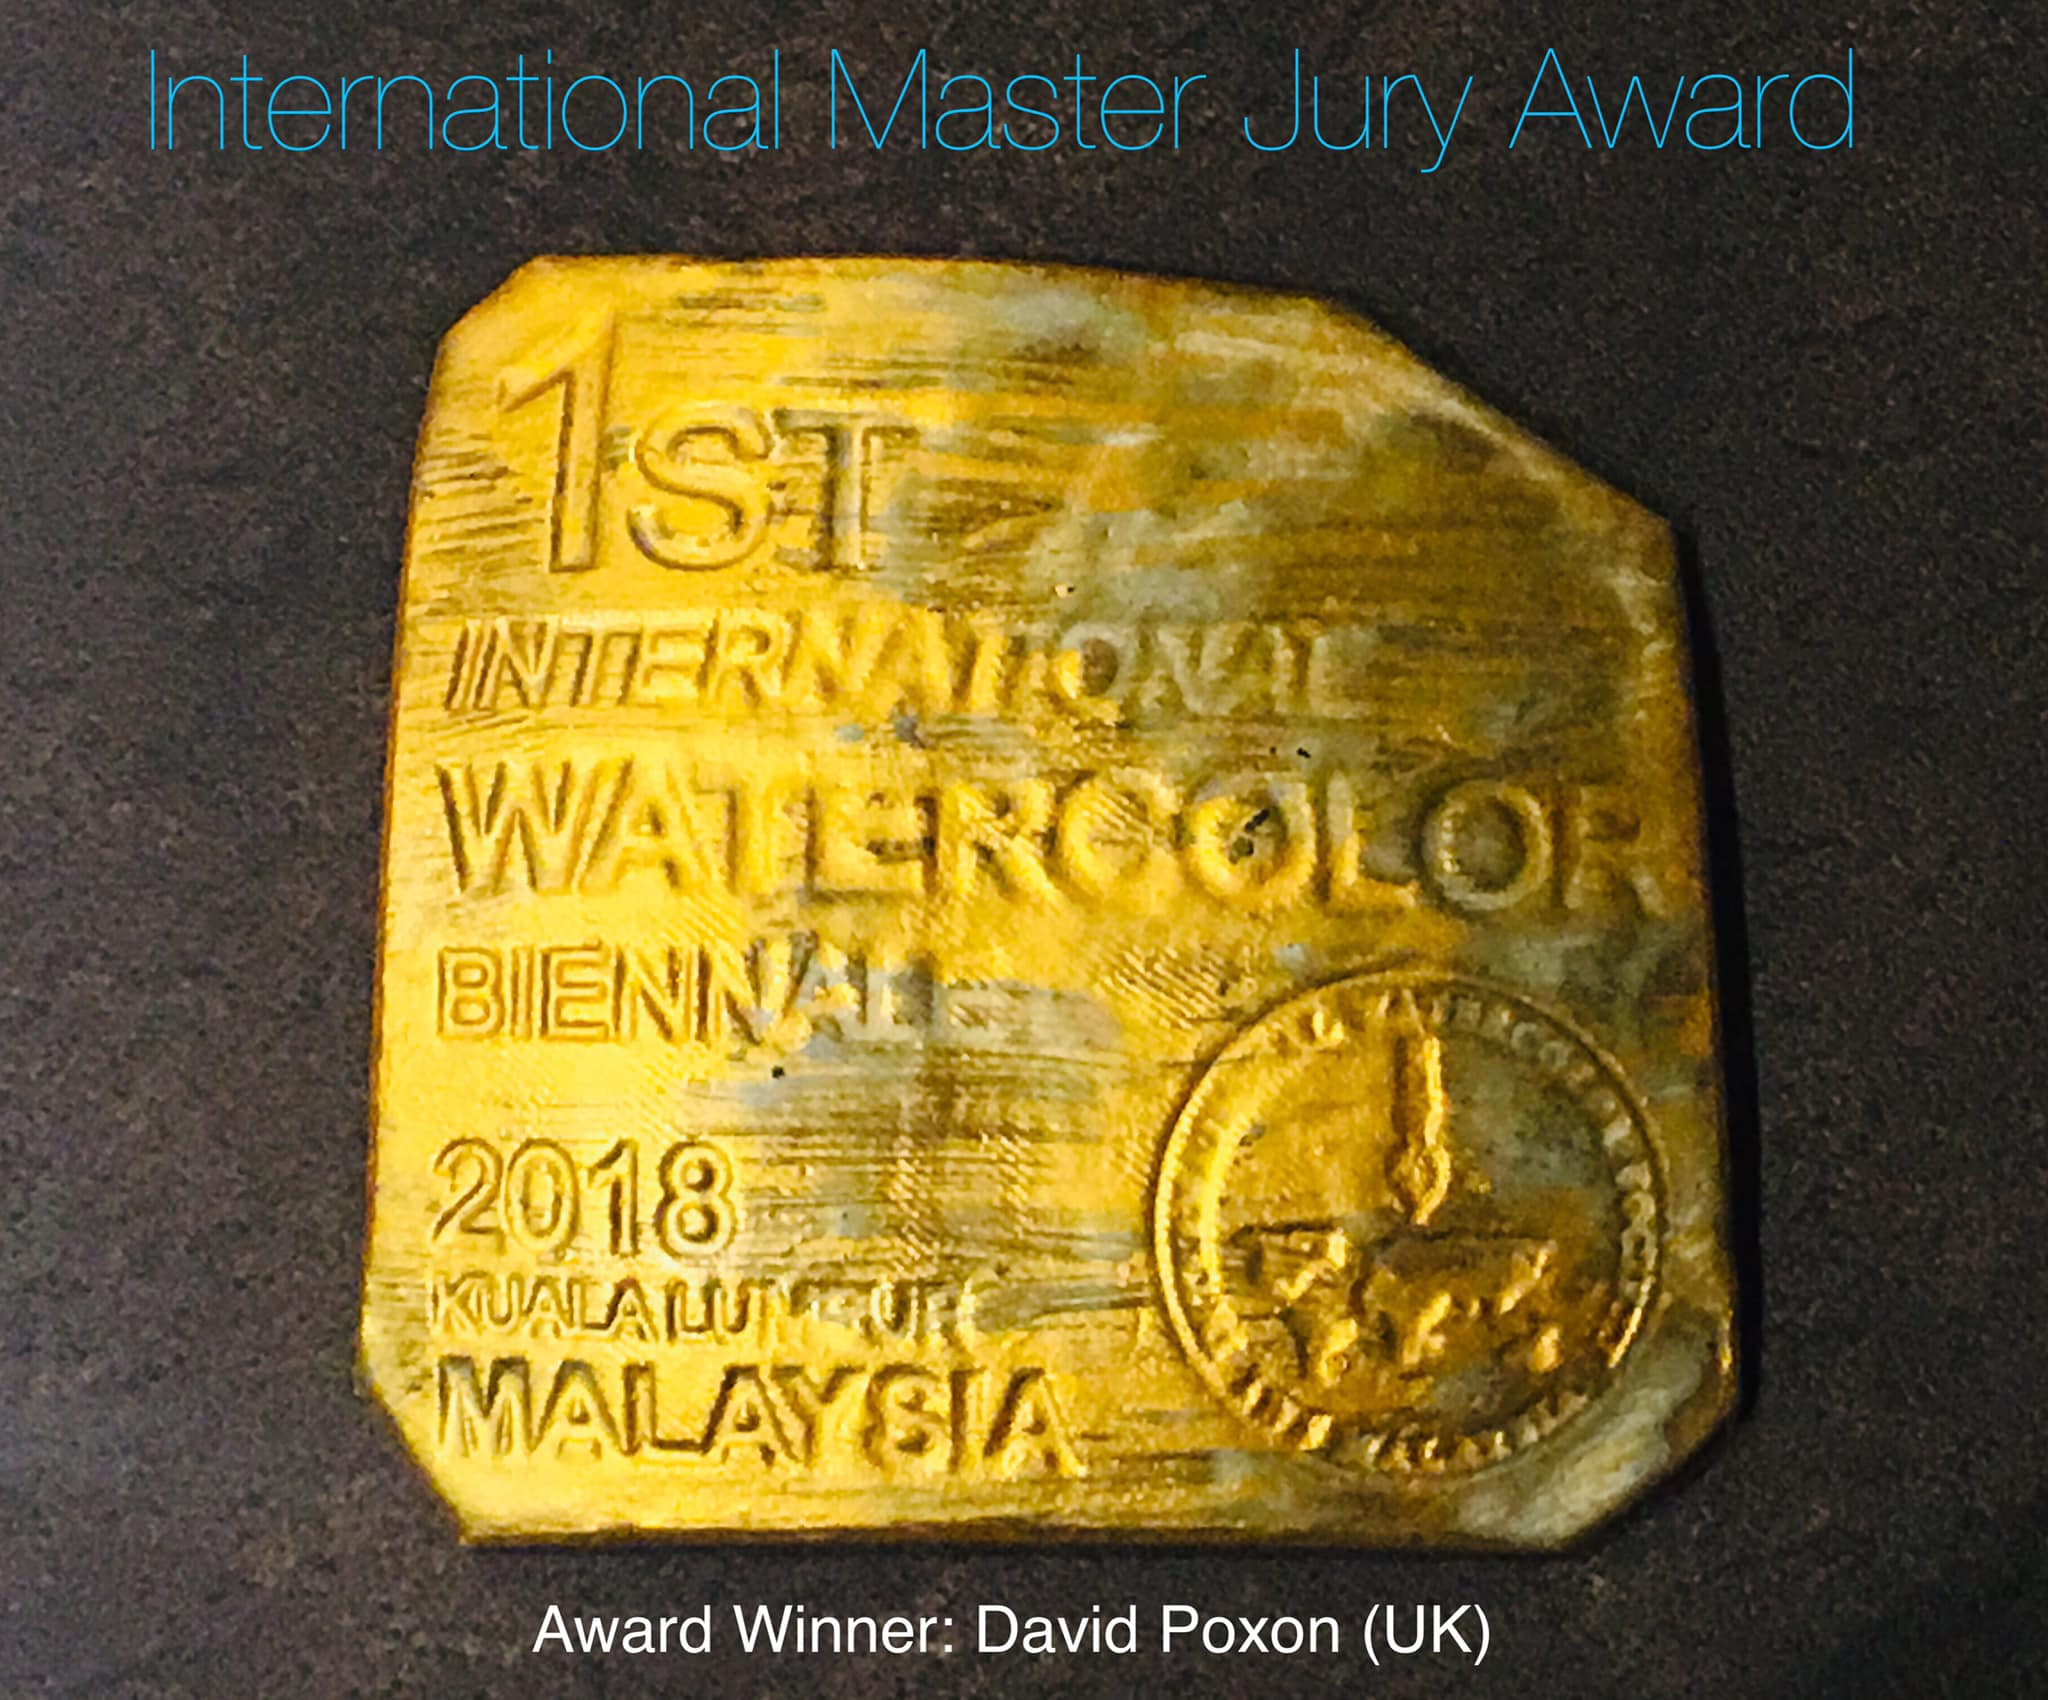 1st International Watercolour Award, Malaysia